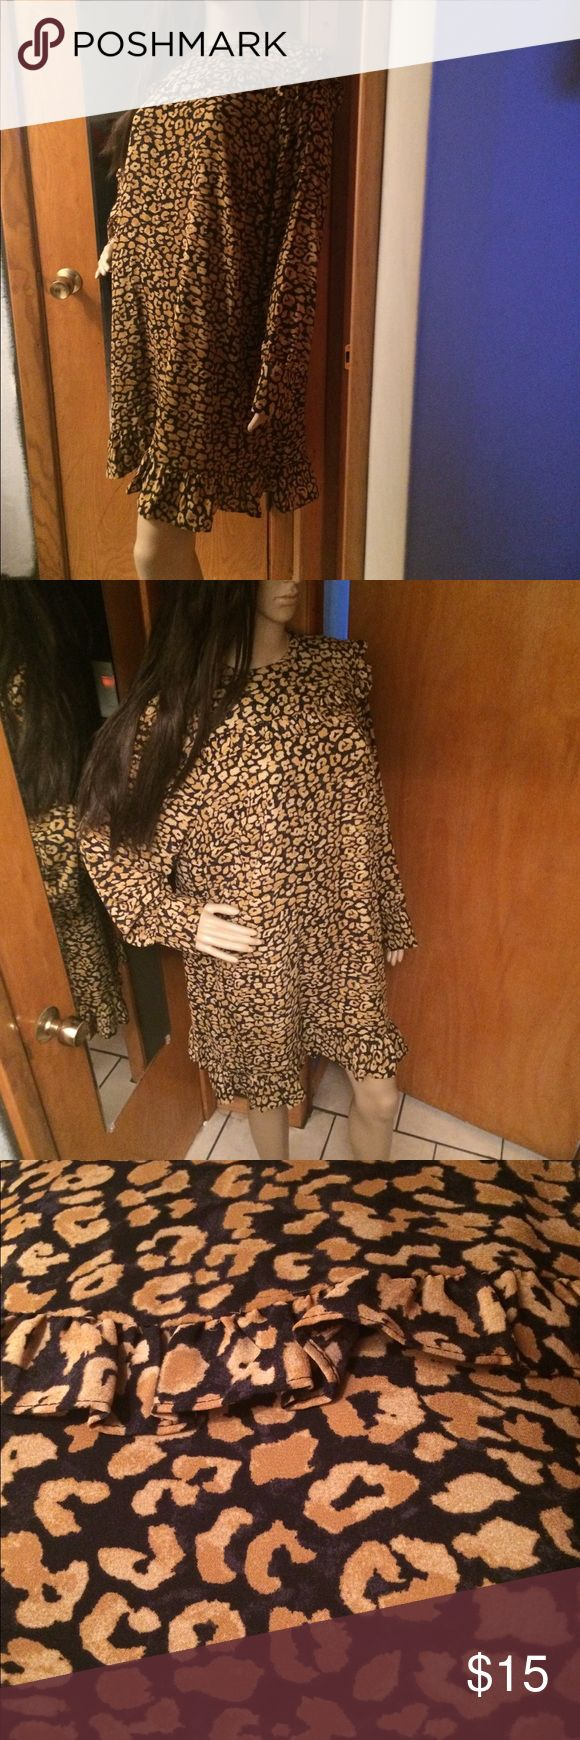 New with Tags leopard cheetah dress New with Tags leopard cheetah dress. Zipper on the back. who what Dresses